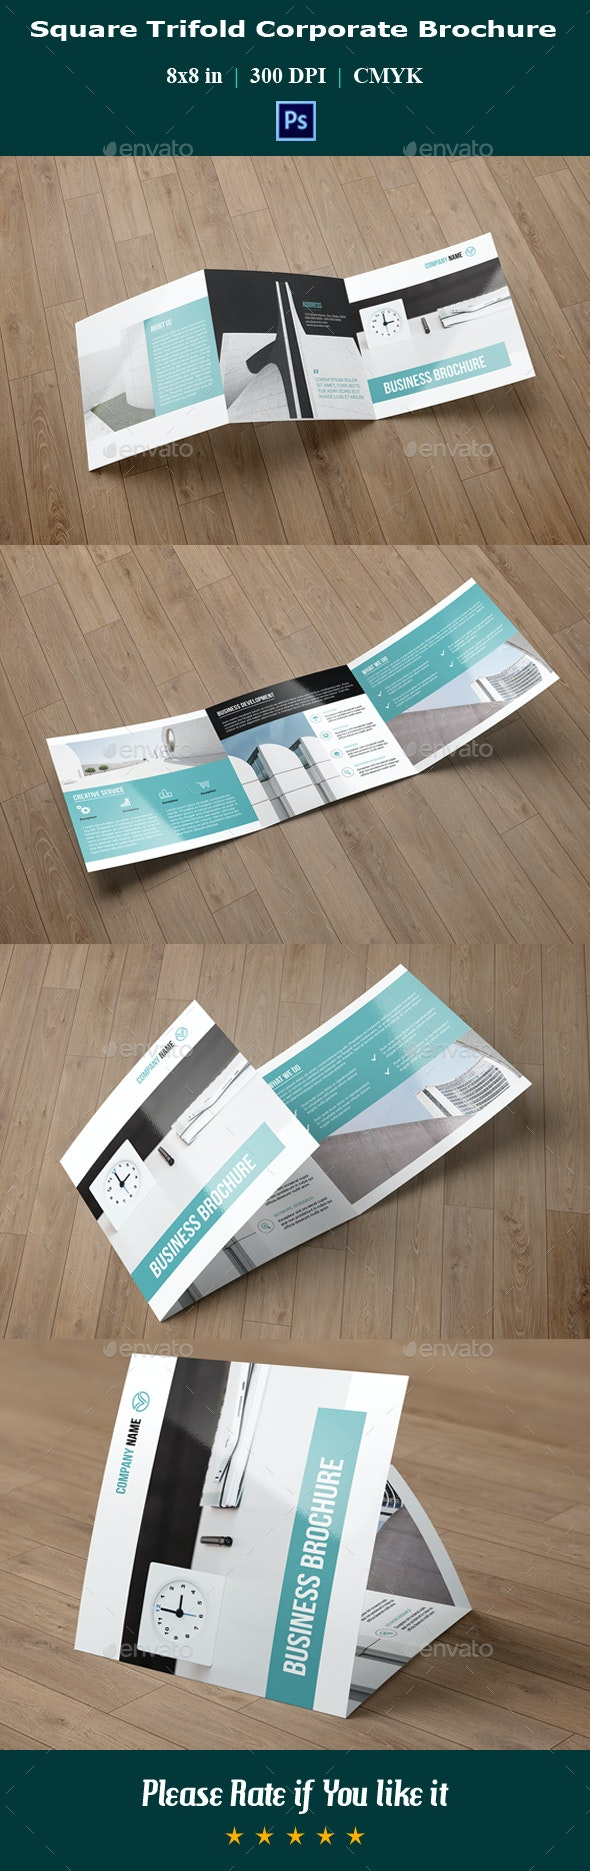 Square Trifold Business Brochure V05 - Corporate Business Cards